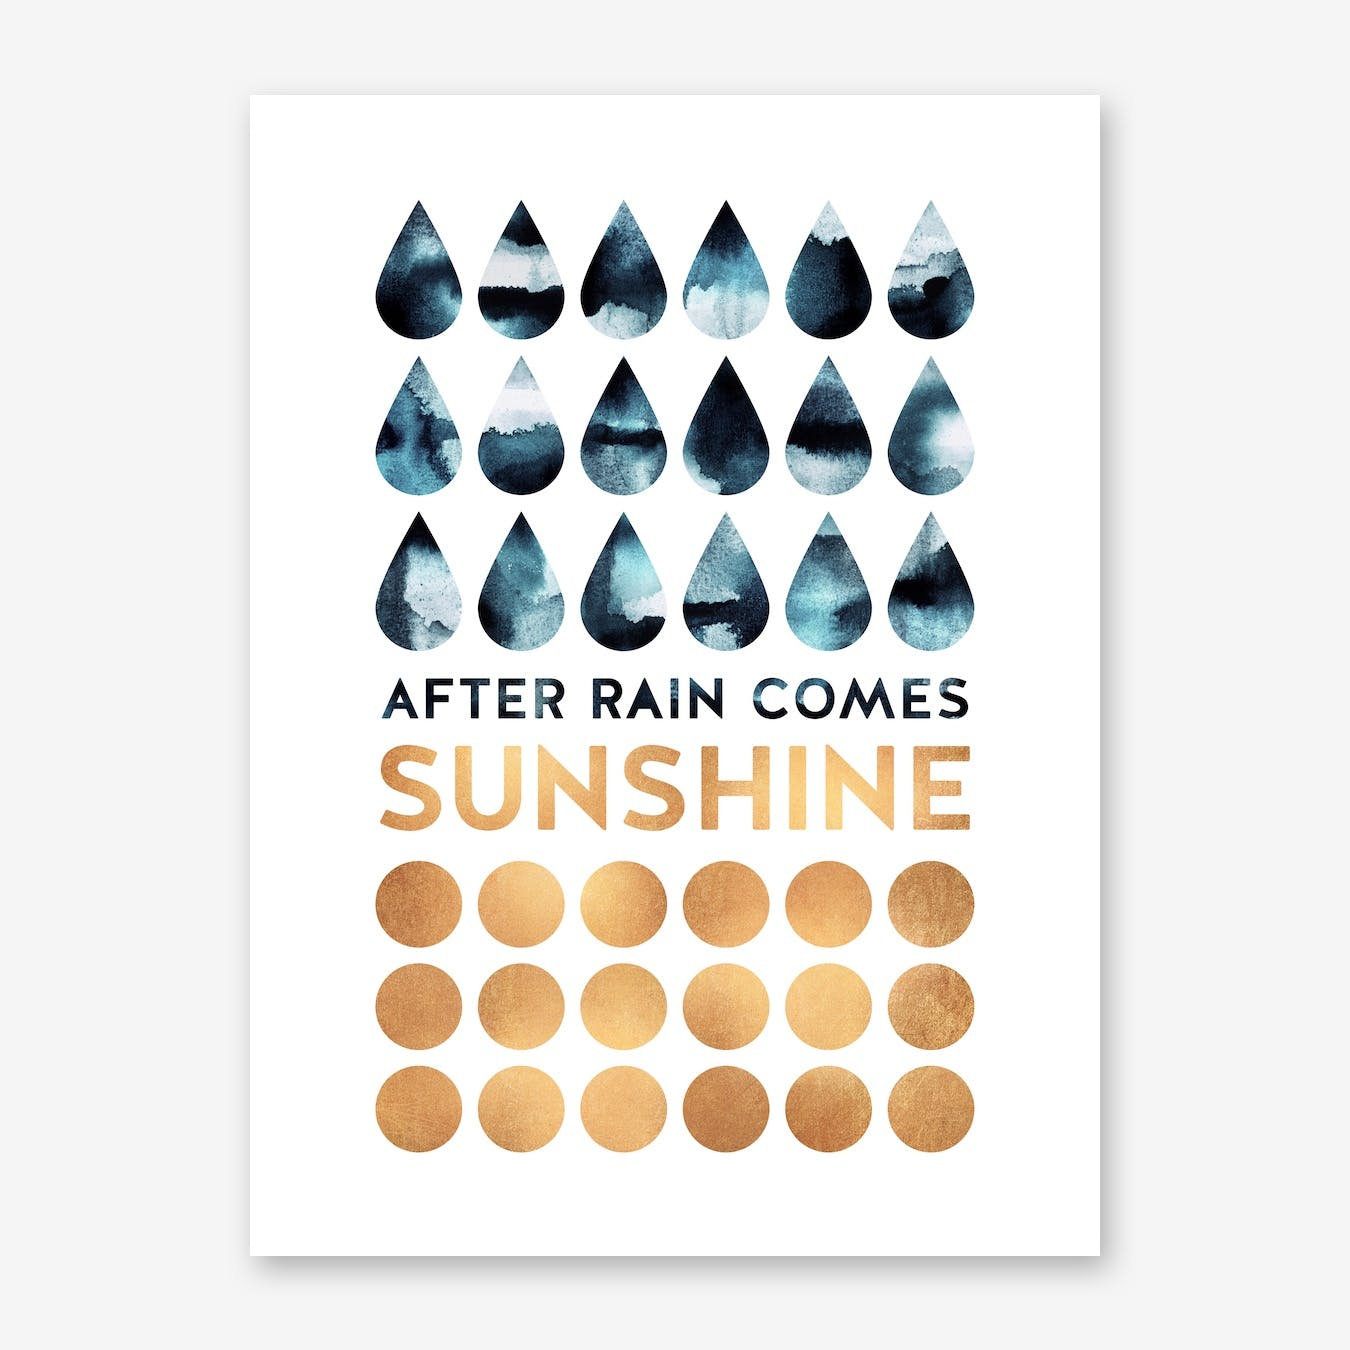 After Rain Comes Sunshine